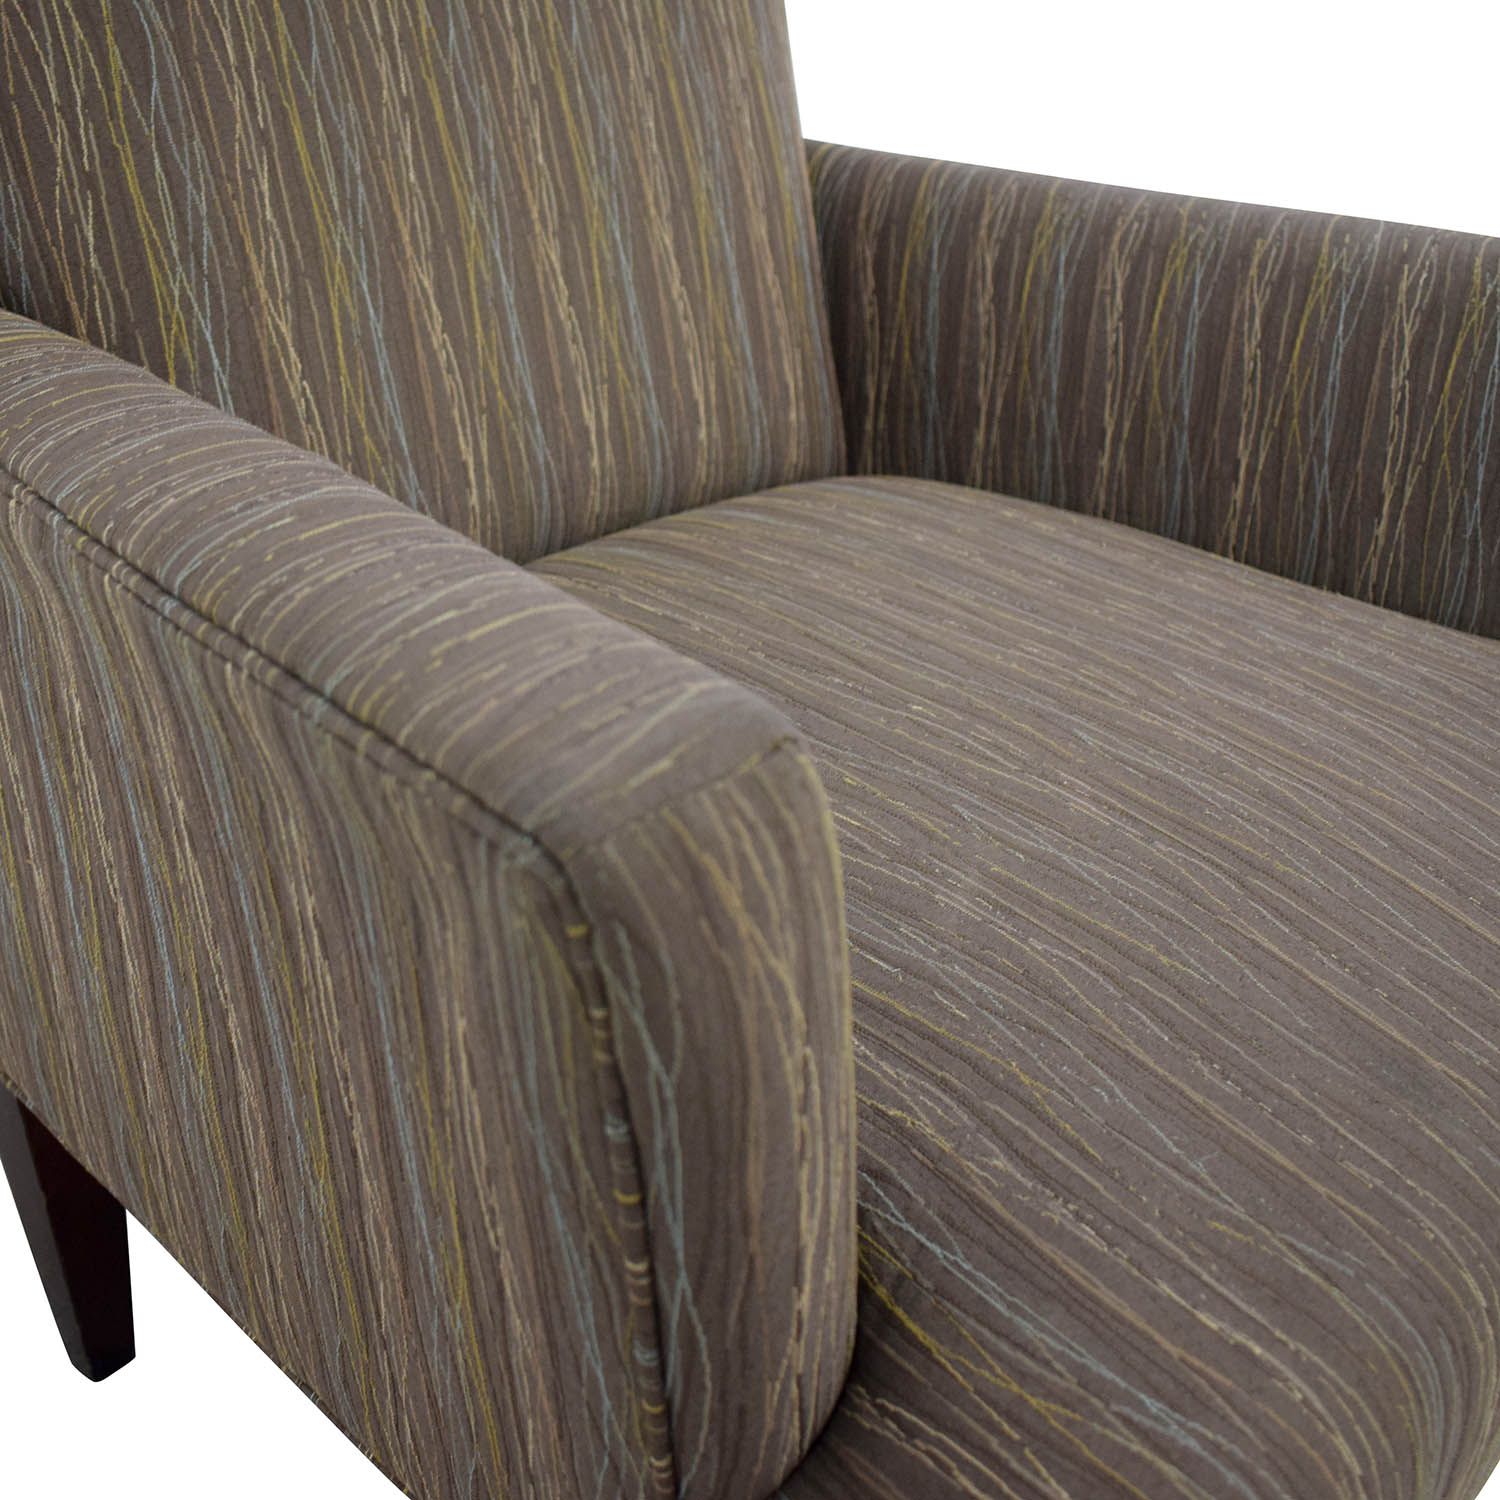 Room & Board Patterned Chair / Chairs